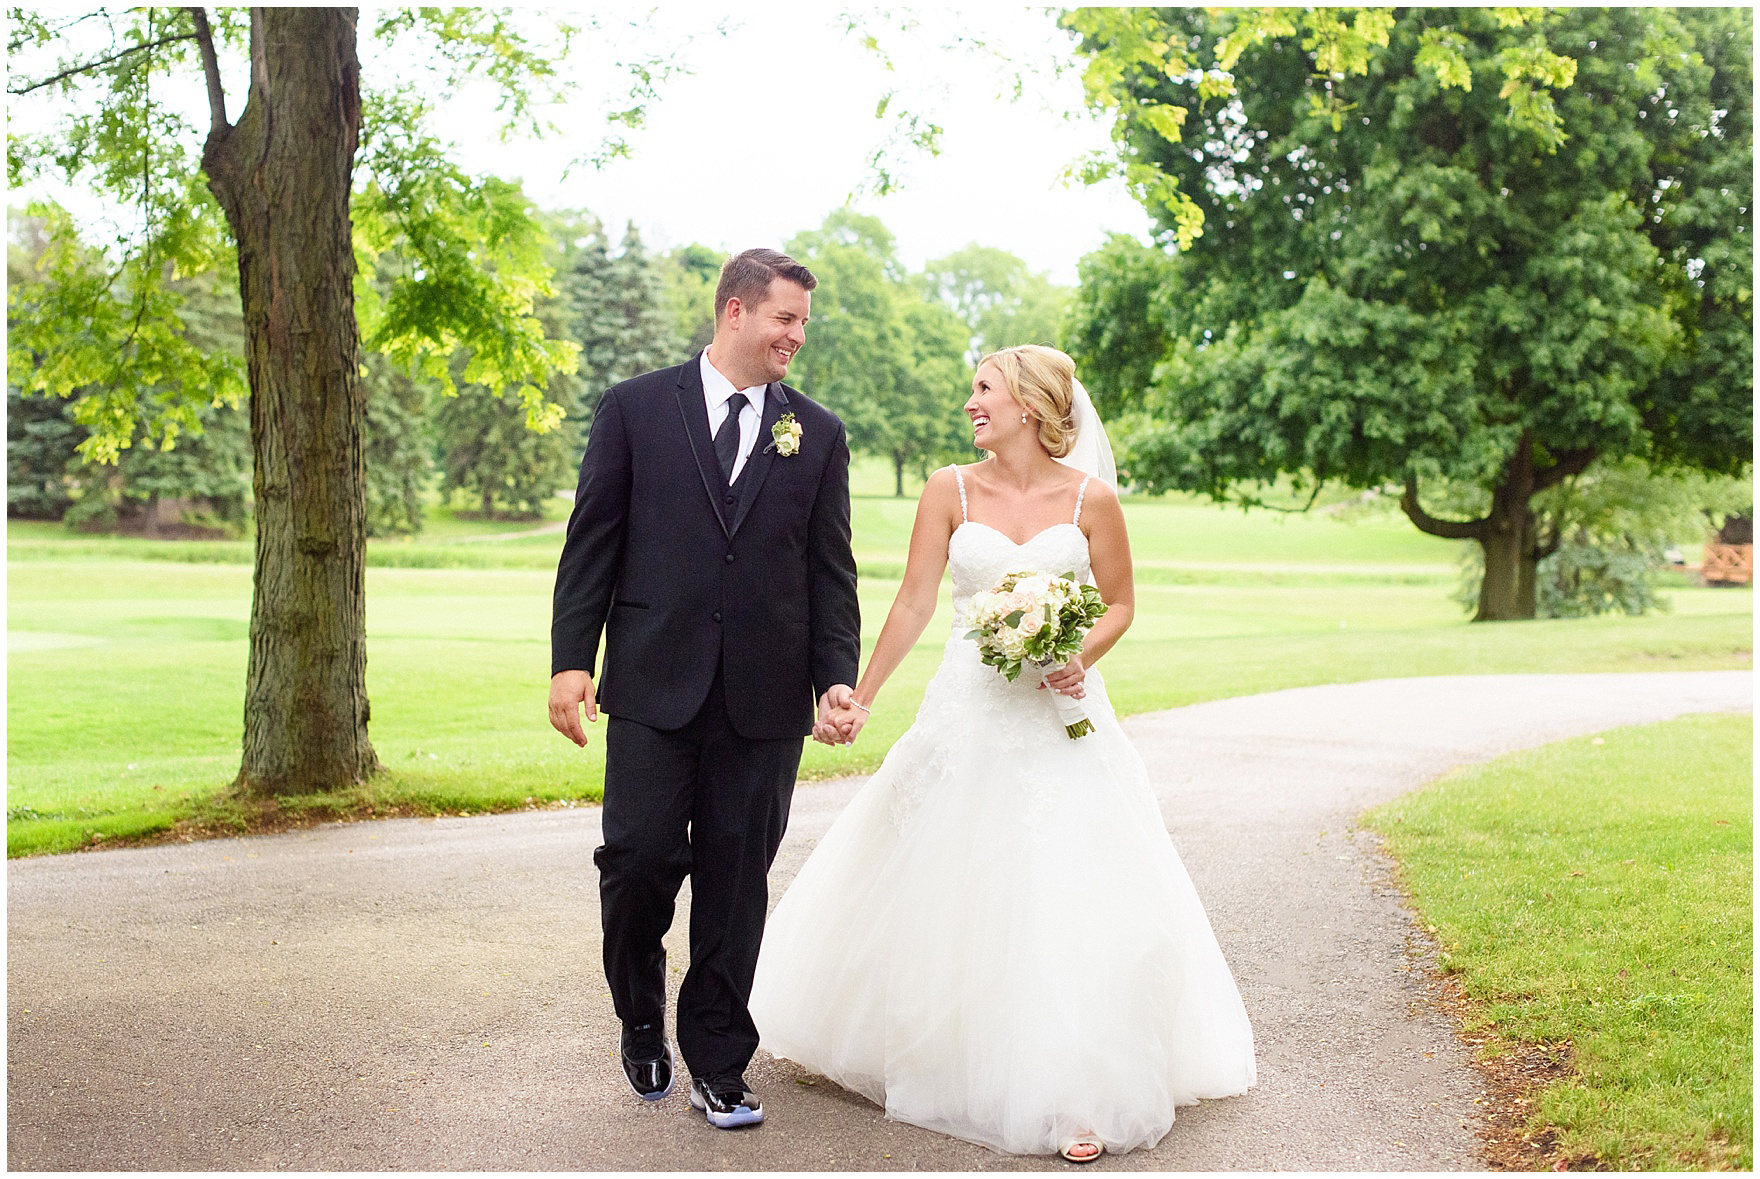 A bride and groom walk and laugh during their Itasca Country Club Illinois wedding.